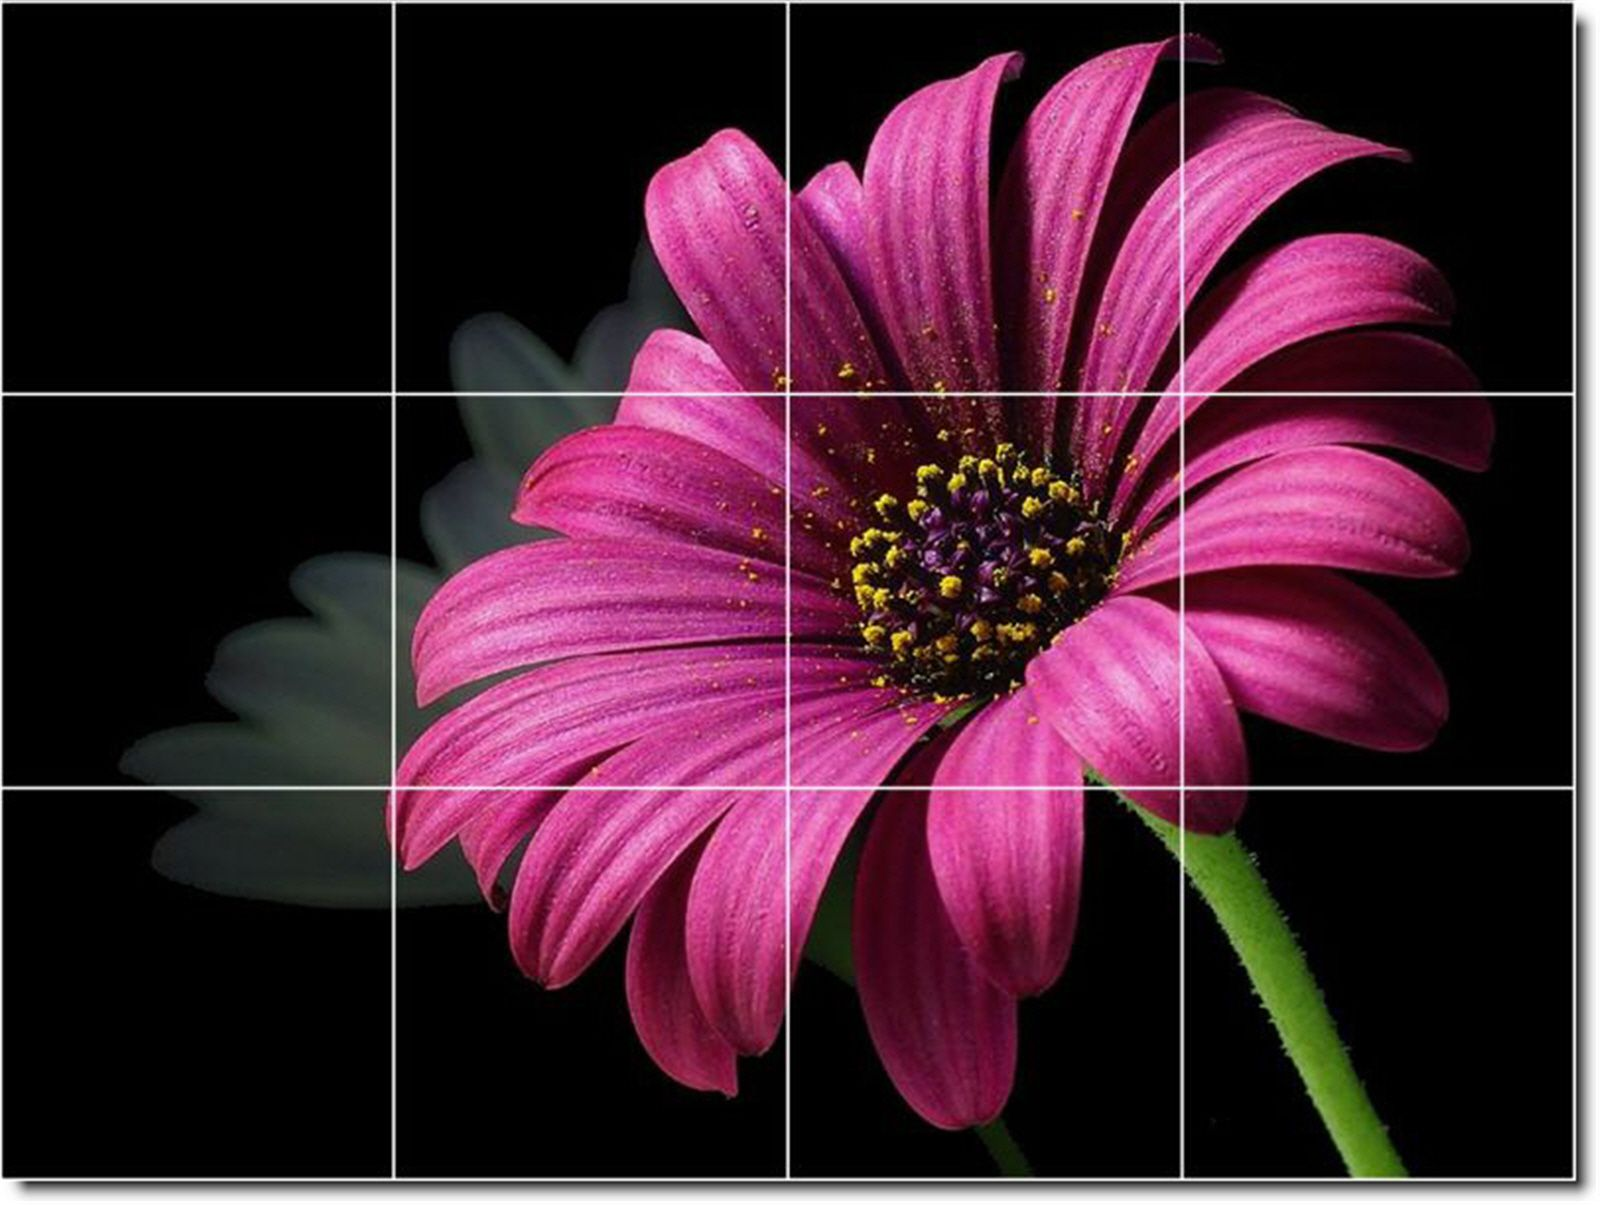 http://www.picture-tiles.com/catalog/images/800/flowers_photo8_0072_43.jpg